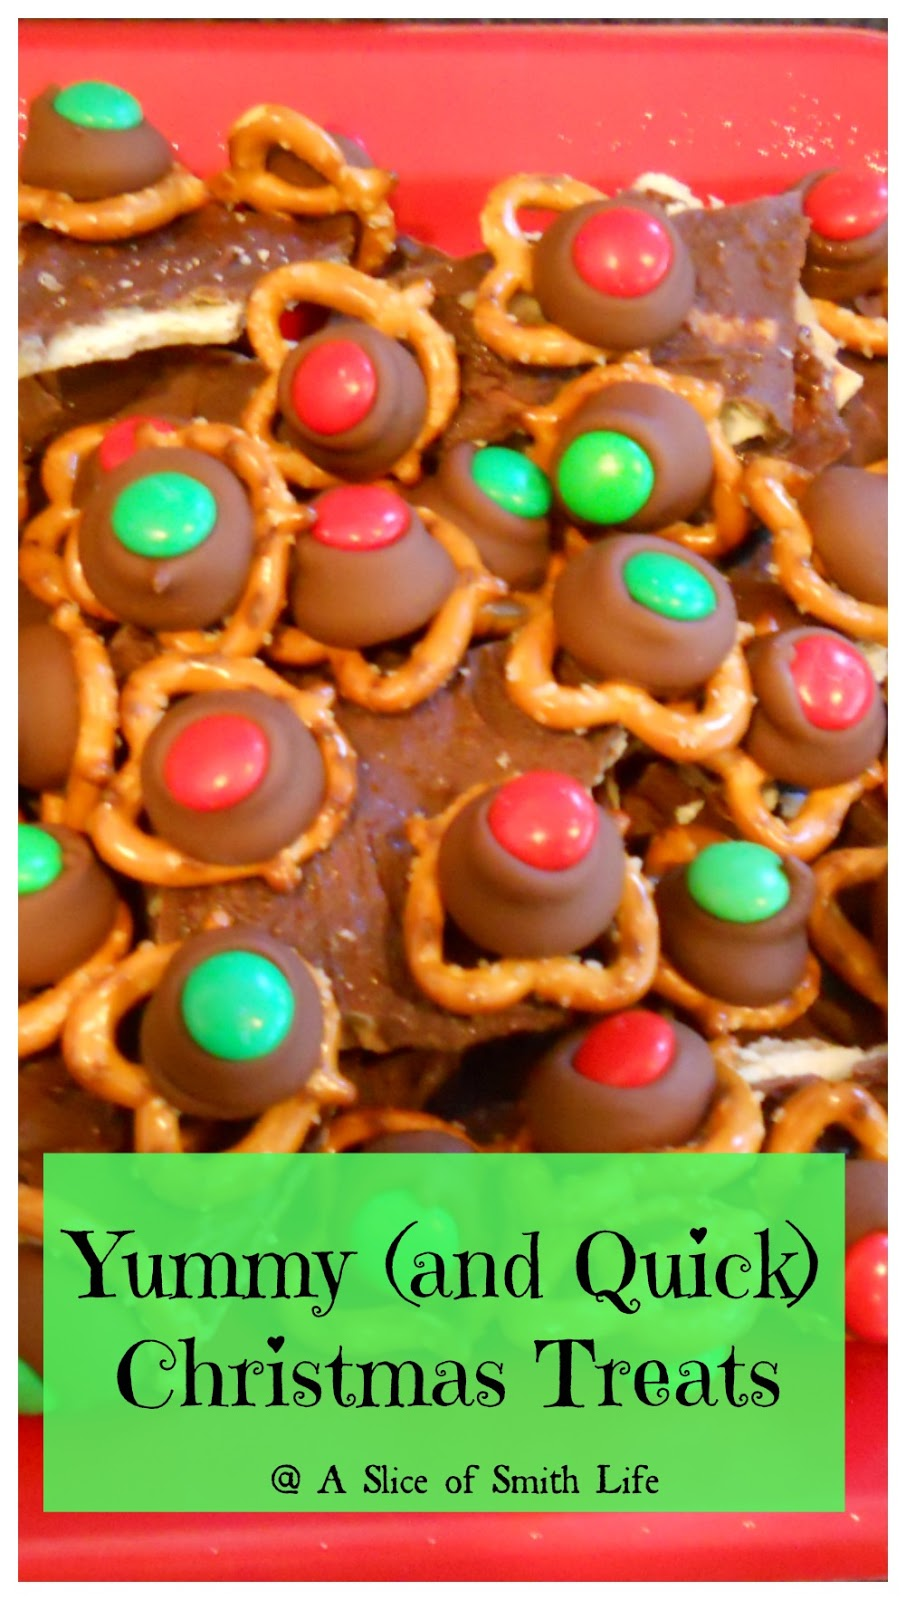 yummy and quick christmas treats